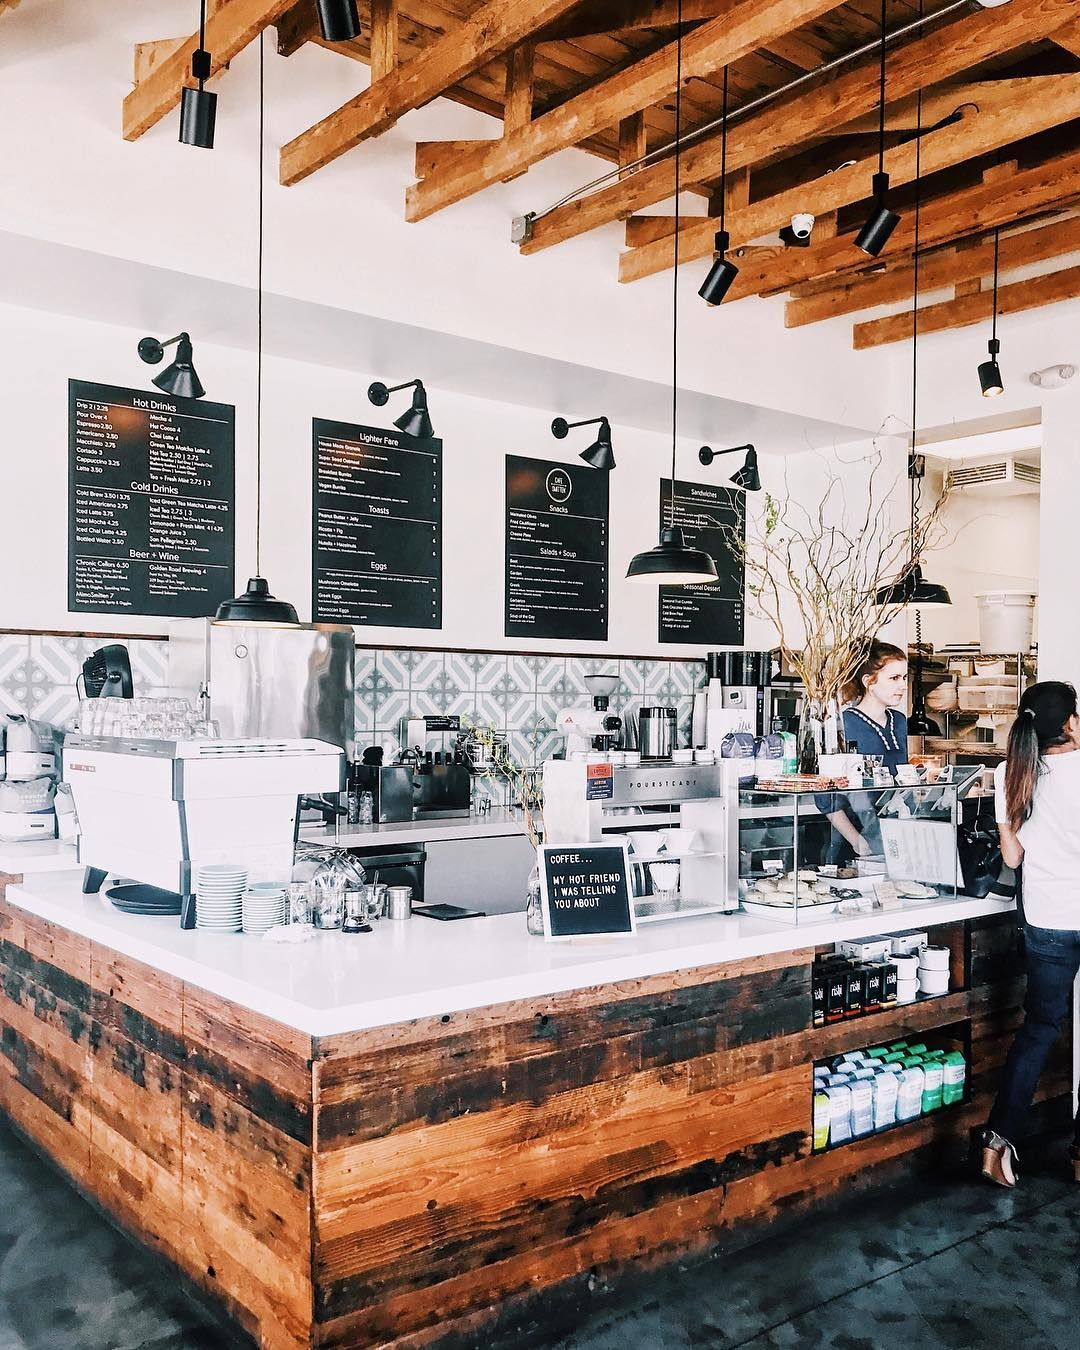 Super Hip Cafe Smitten Is Breathing New Life Into Downtown Bakersfield Serving Counter Culture Coffee Bak Bakersfield Best Coffee Shop Counter Culture Coffee